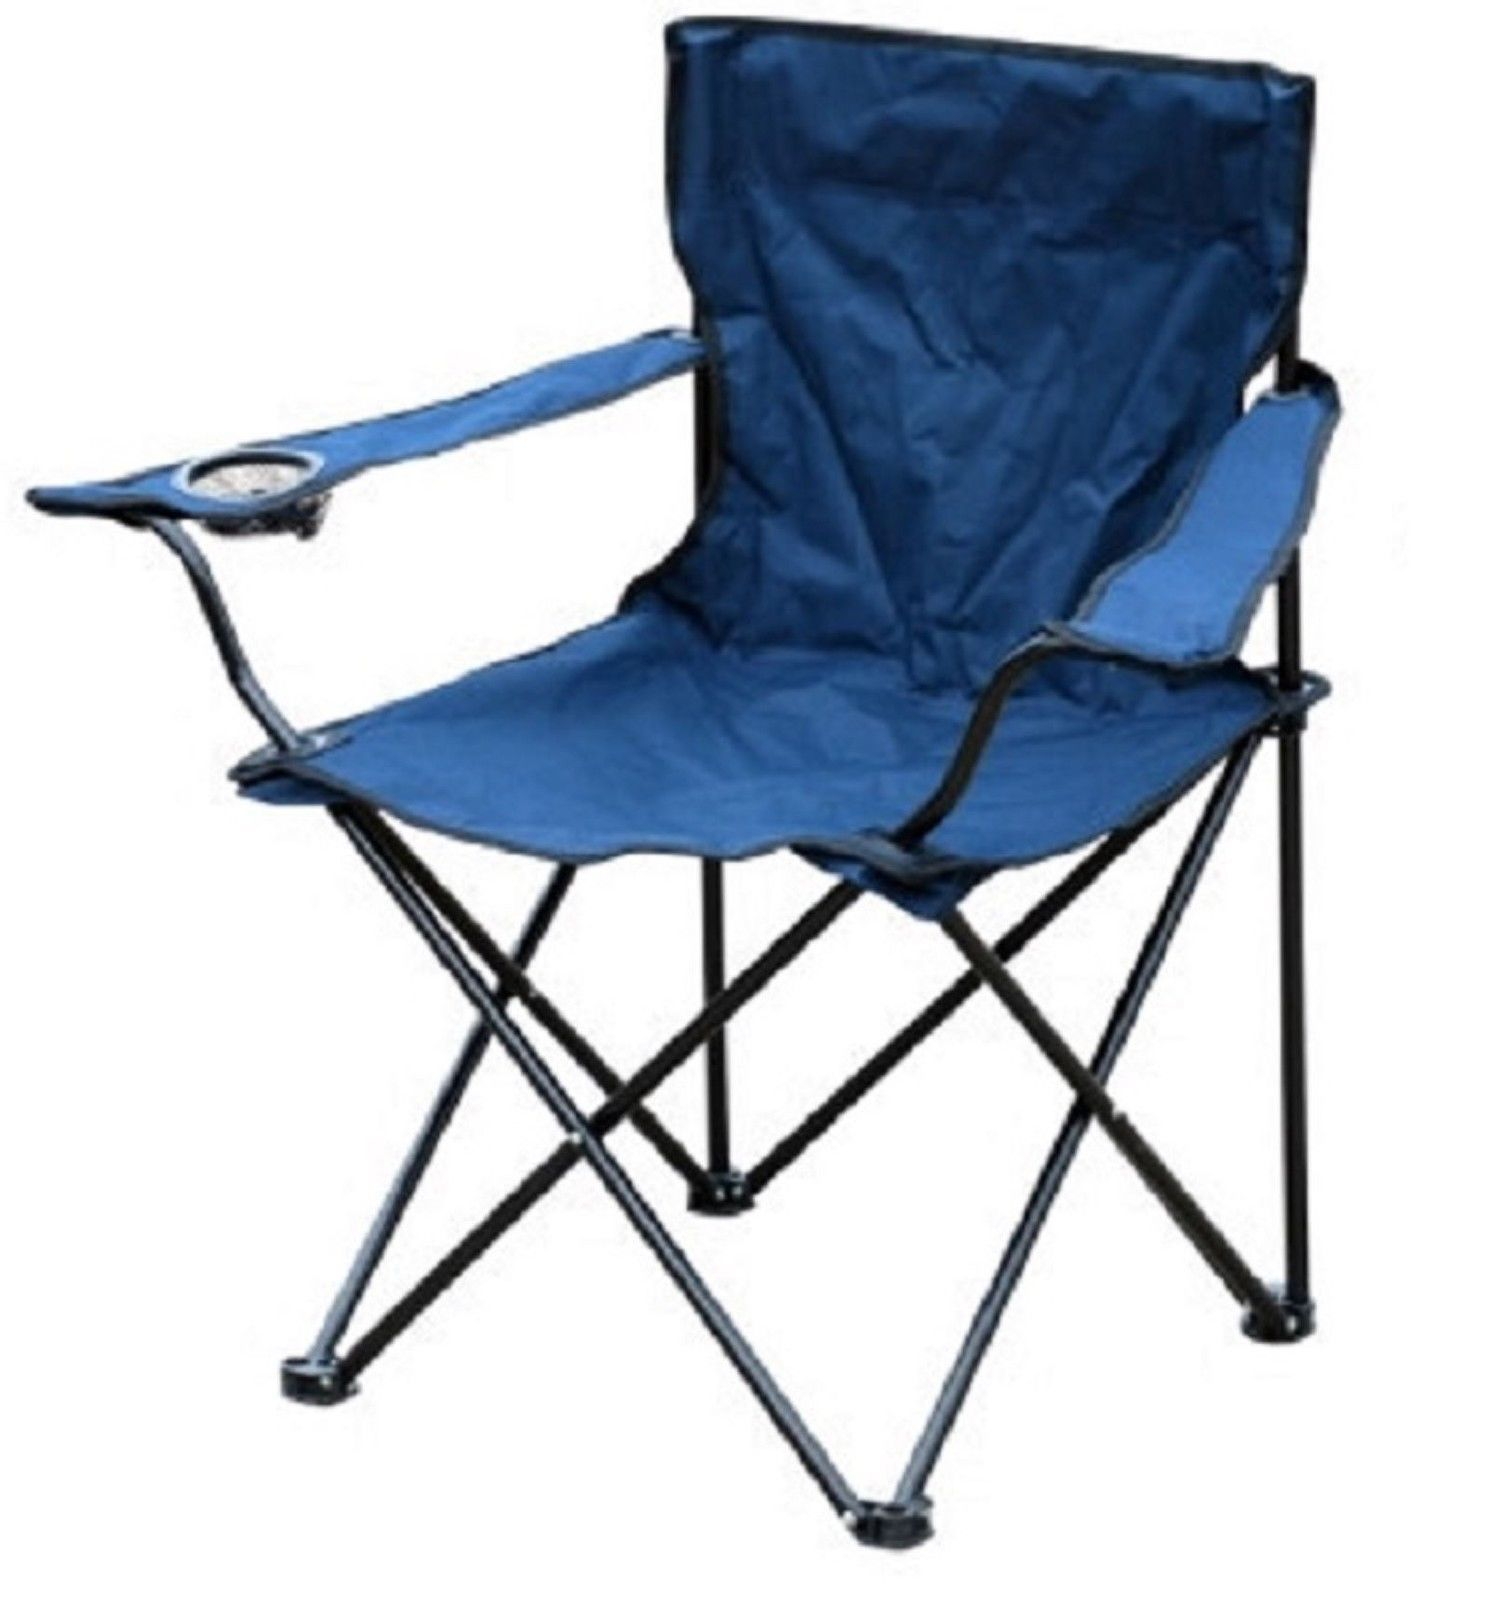 folding chair garden in pakistan brand new lightweight portable outdoor camping